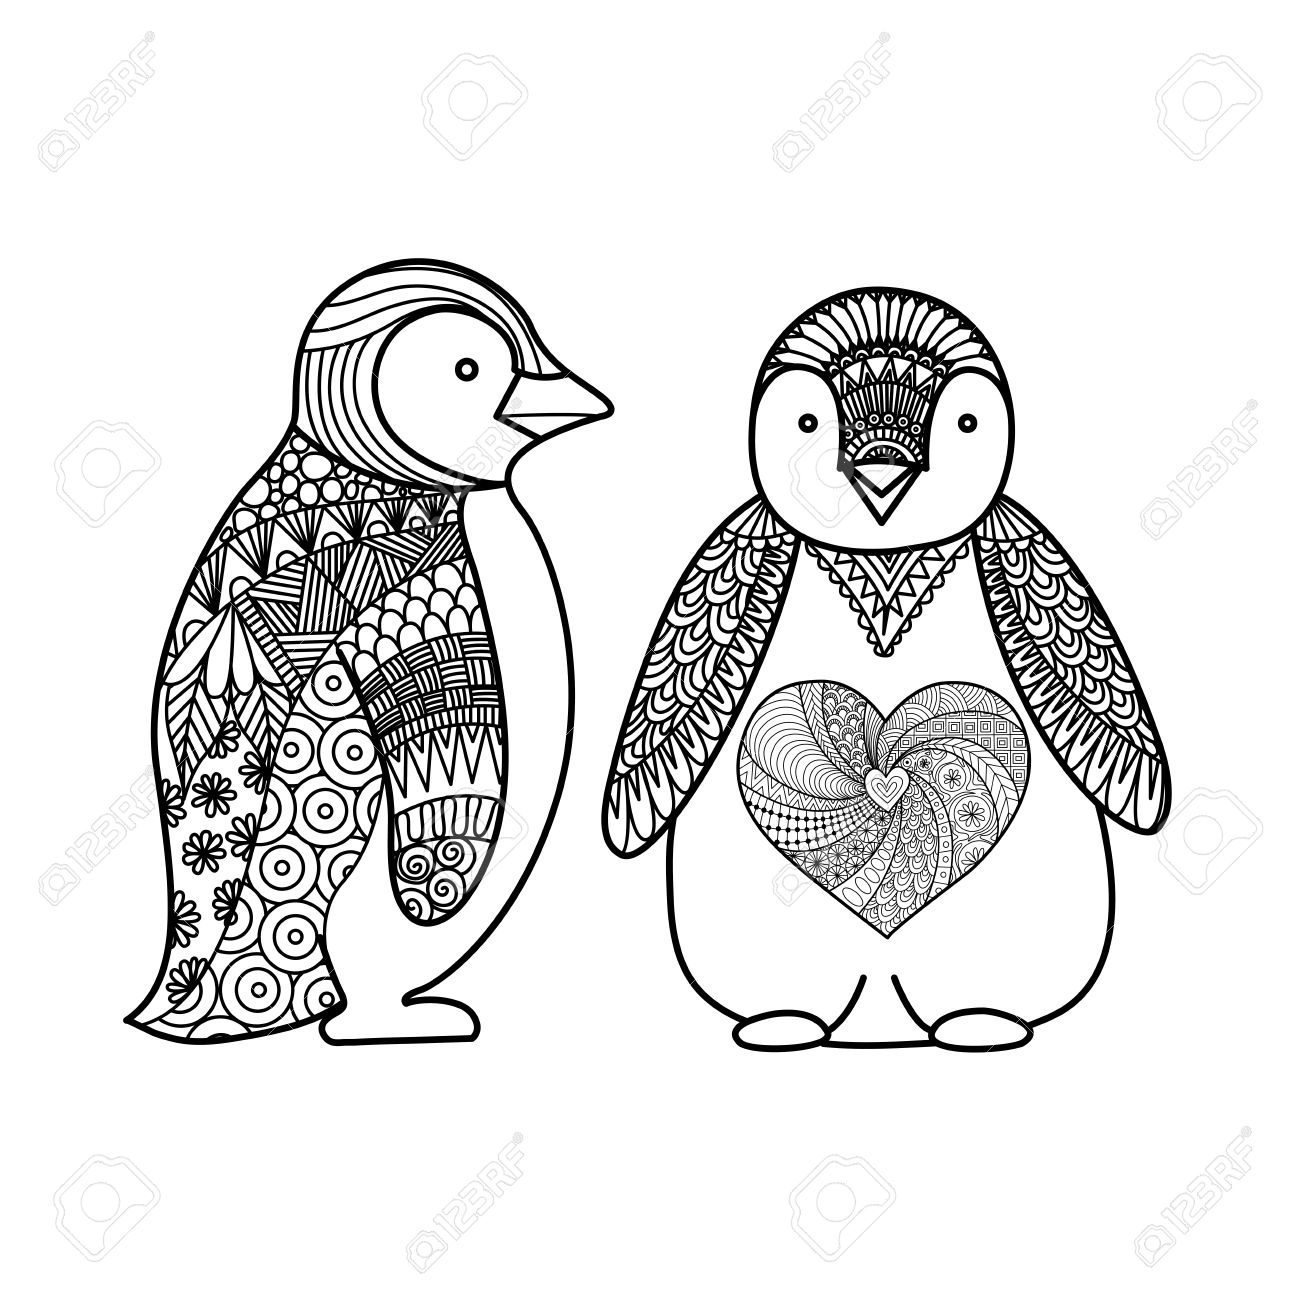 Two Penguins Line Art Design For Coloring Book For Adult T Royalty Free Cliparts Vectors And Stock Illustration Image 63513169